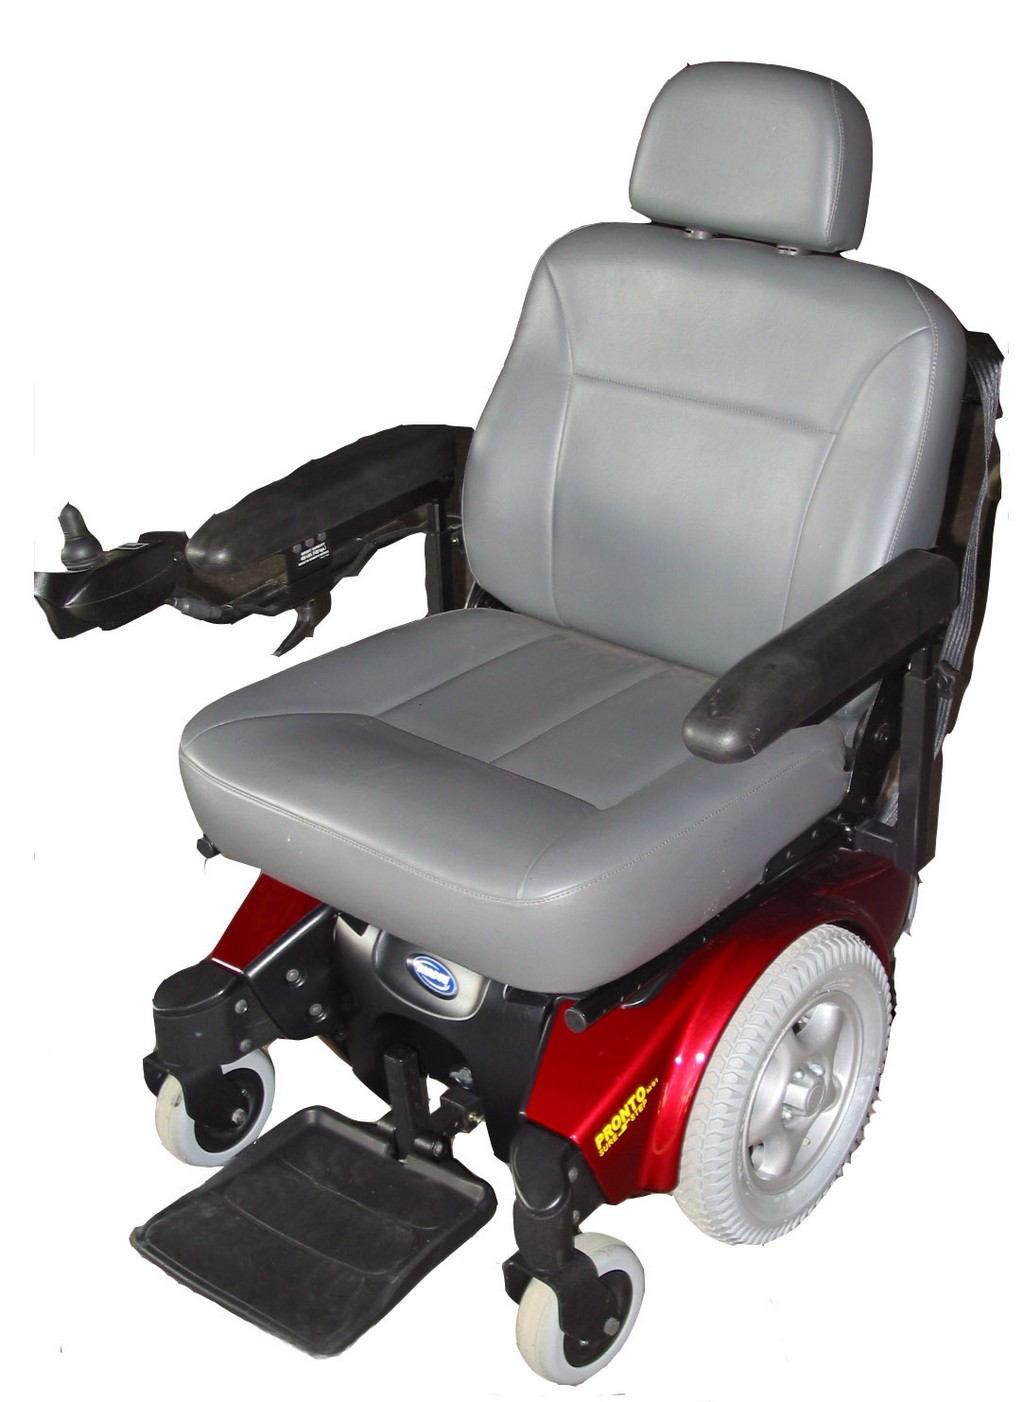 merit power wheel chair, merit power wheelchair parts, invacare electric wheelchair, wheelchair electric